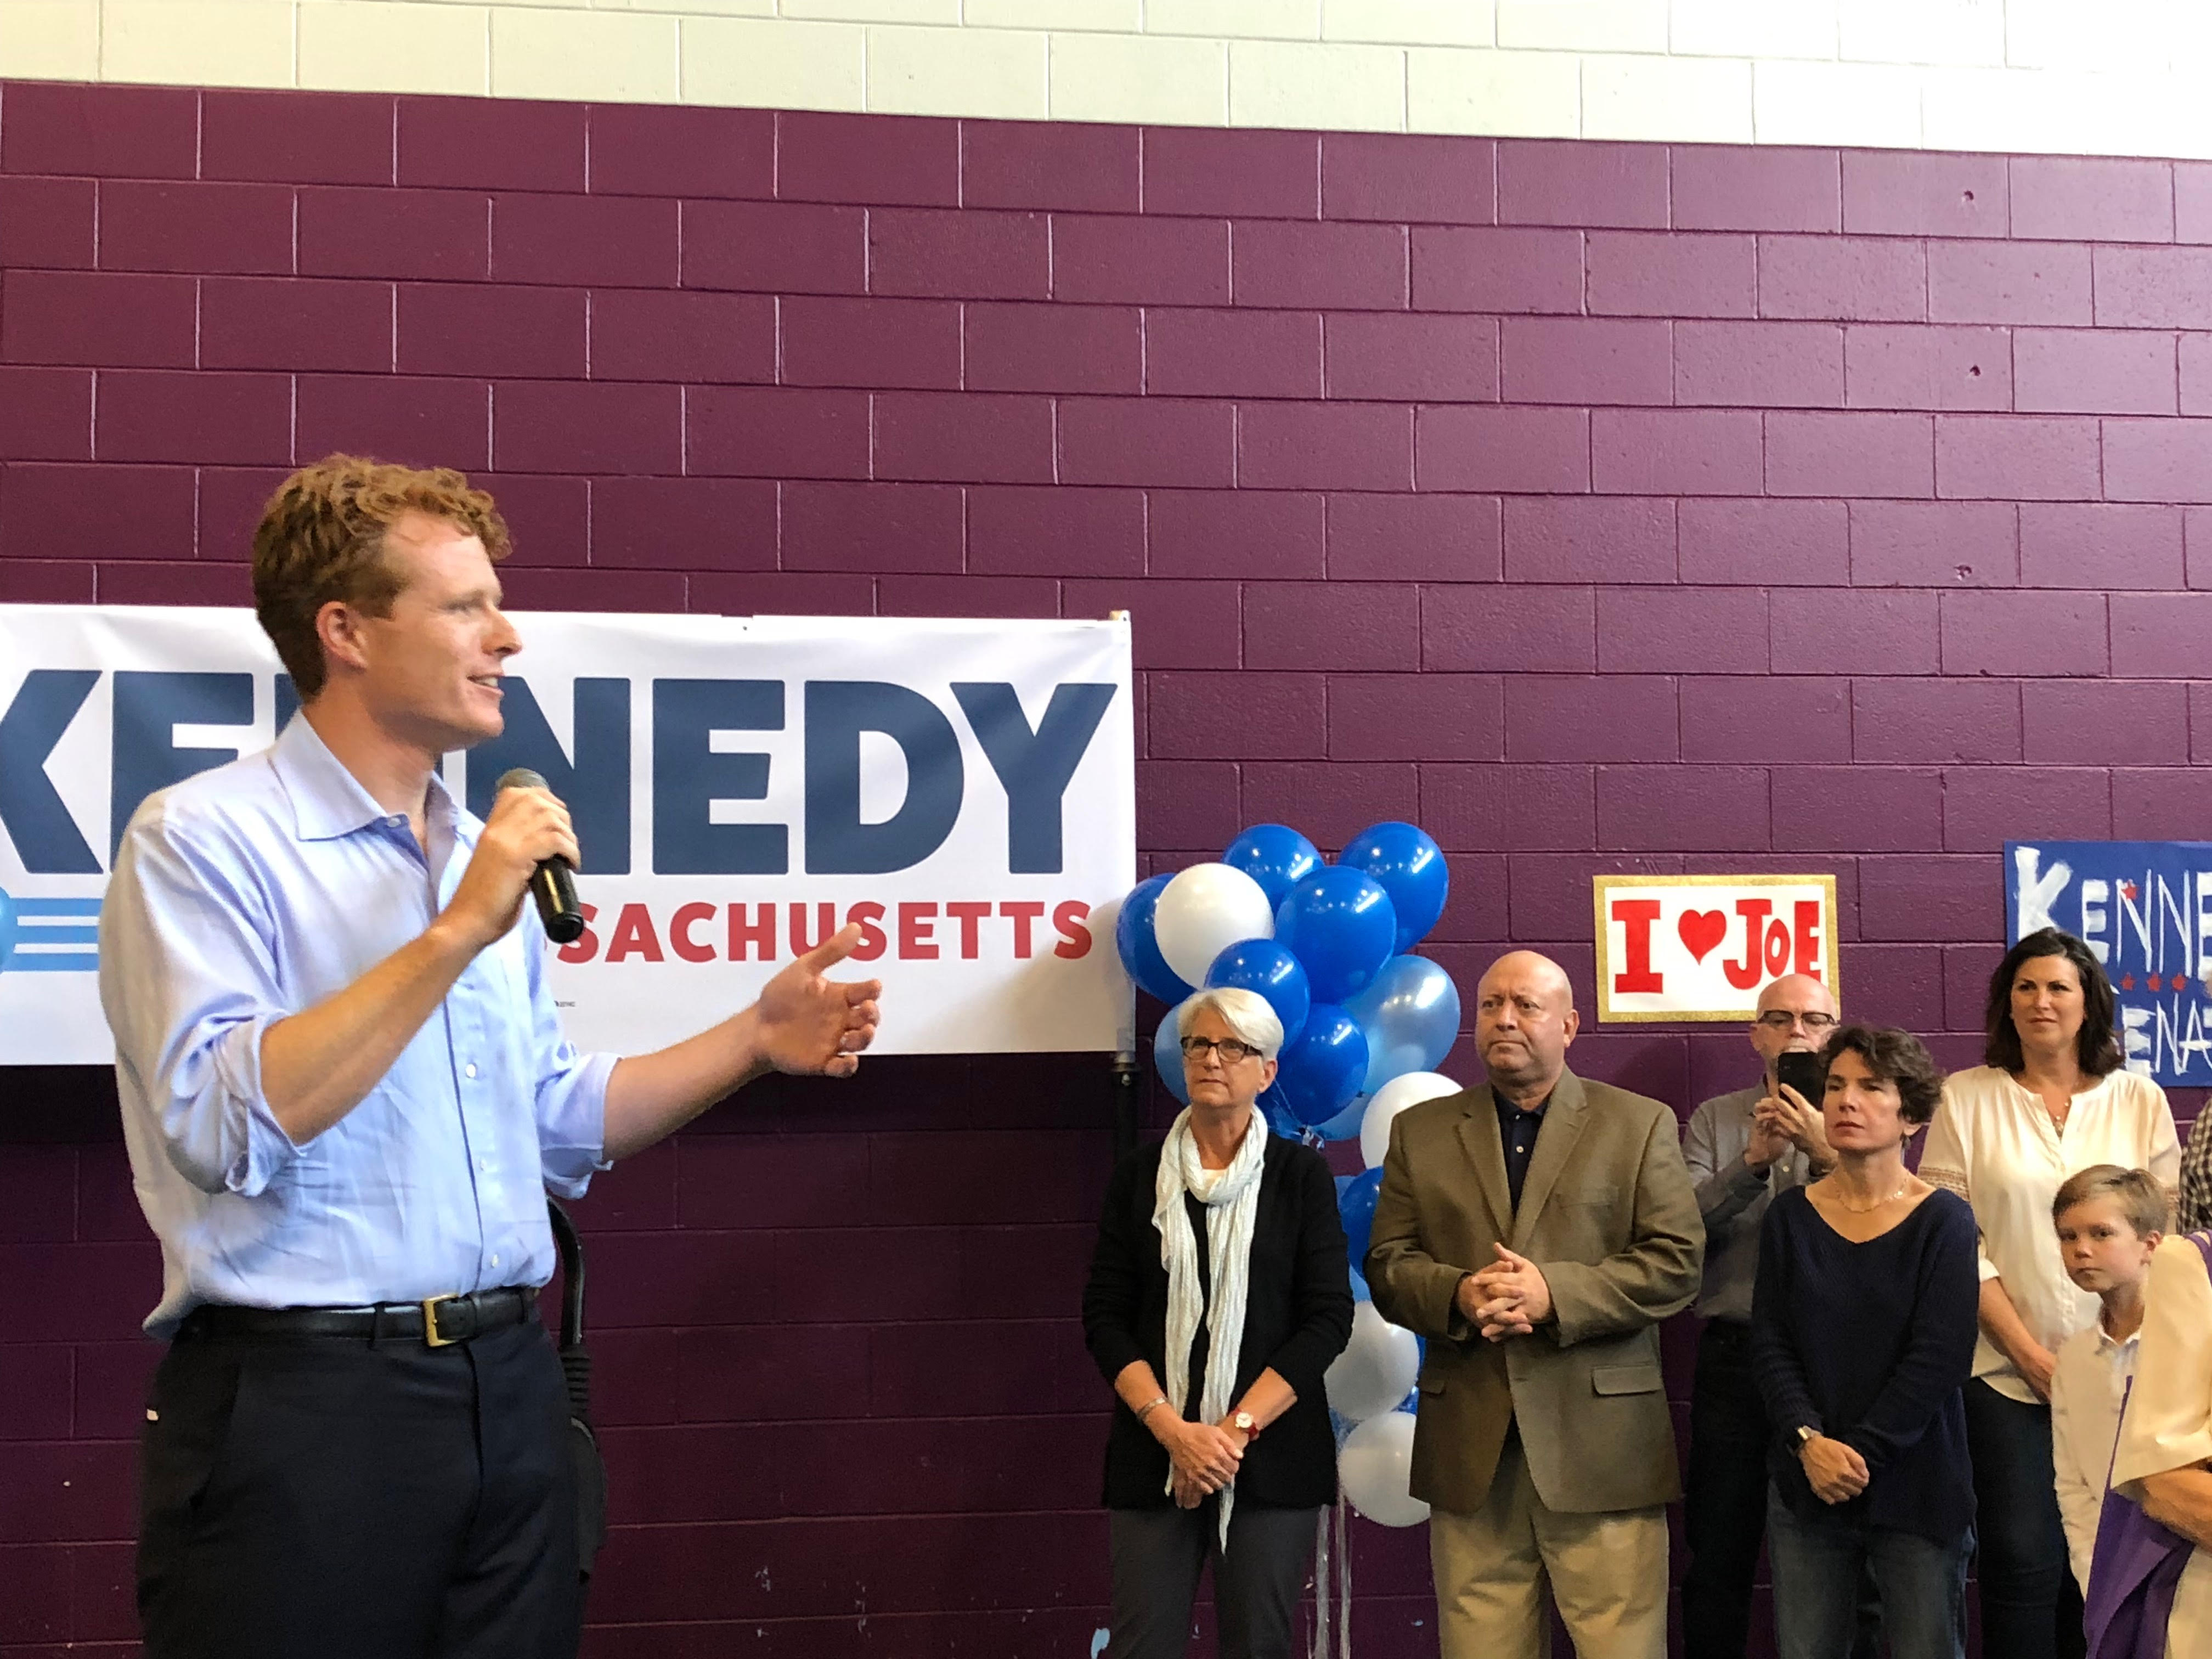 Joe Kennedy, announcing Senate run in East Boston, says challenging Ed Markey comes down to vision, not age